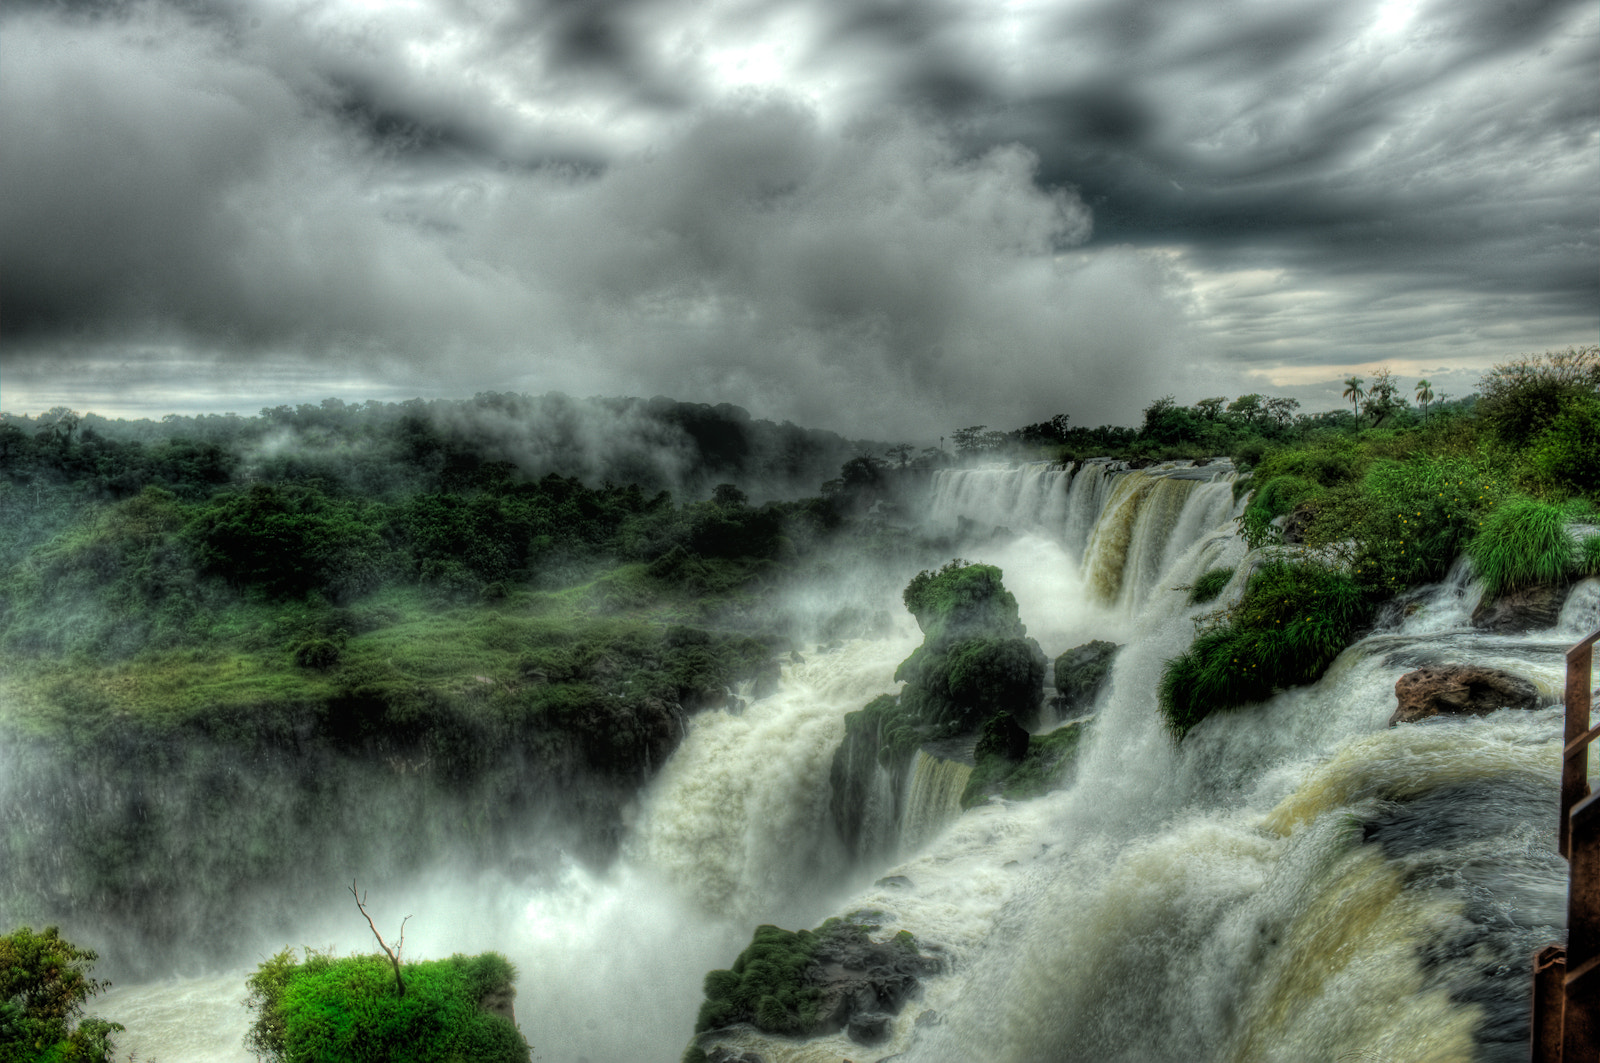 Photograph Iguassu Fall HDR by Phil Nwafor on 500px